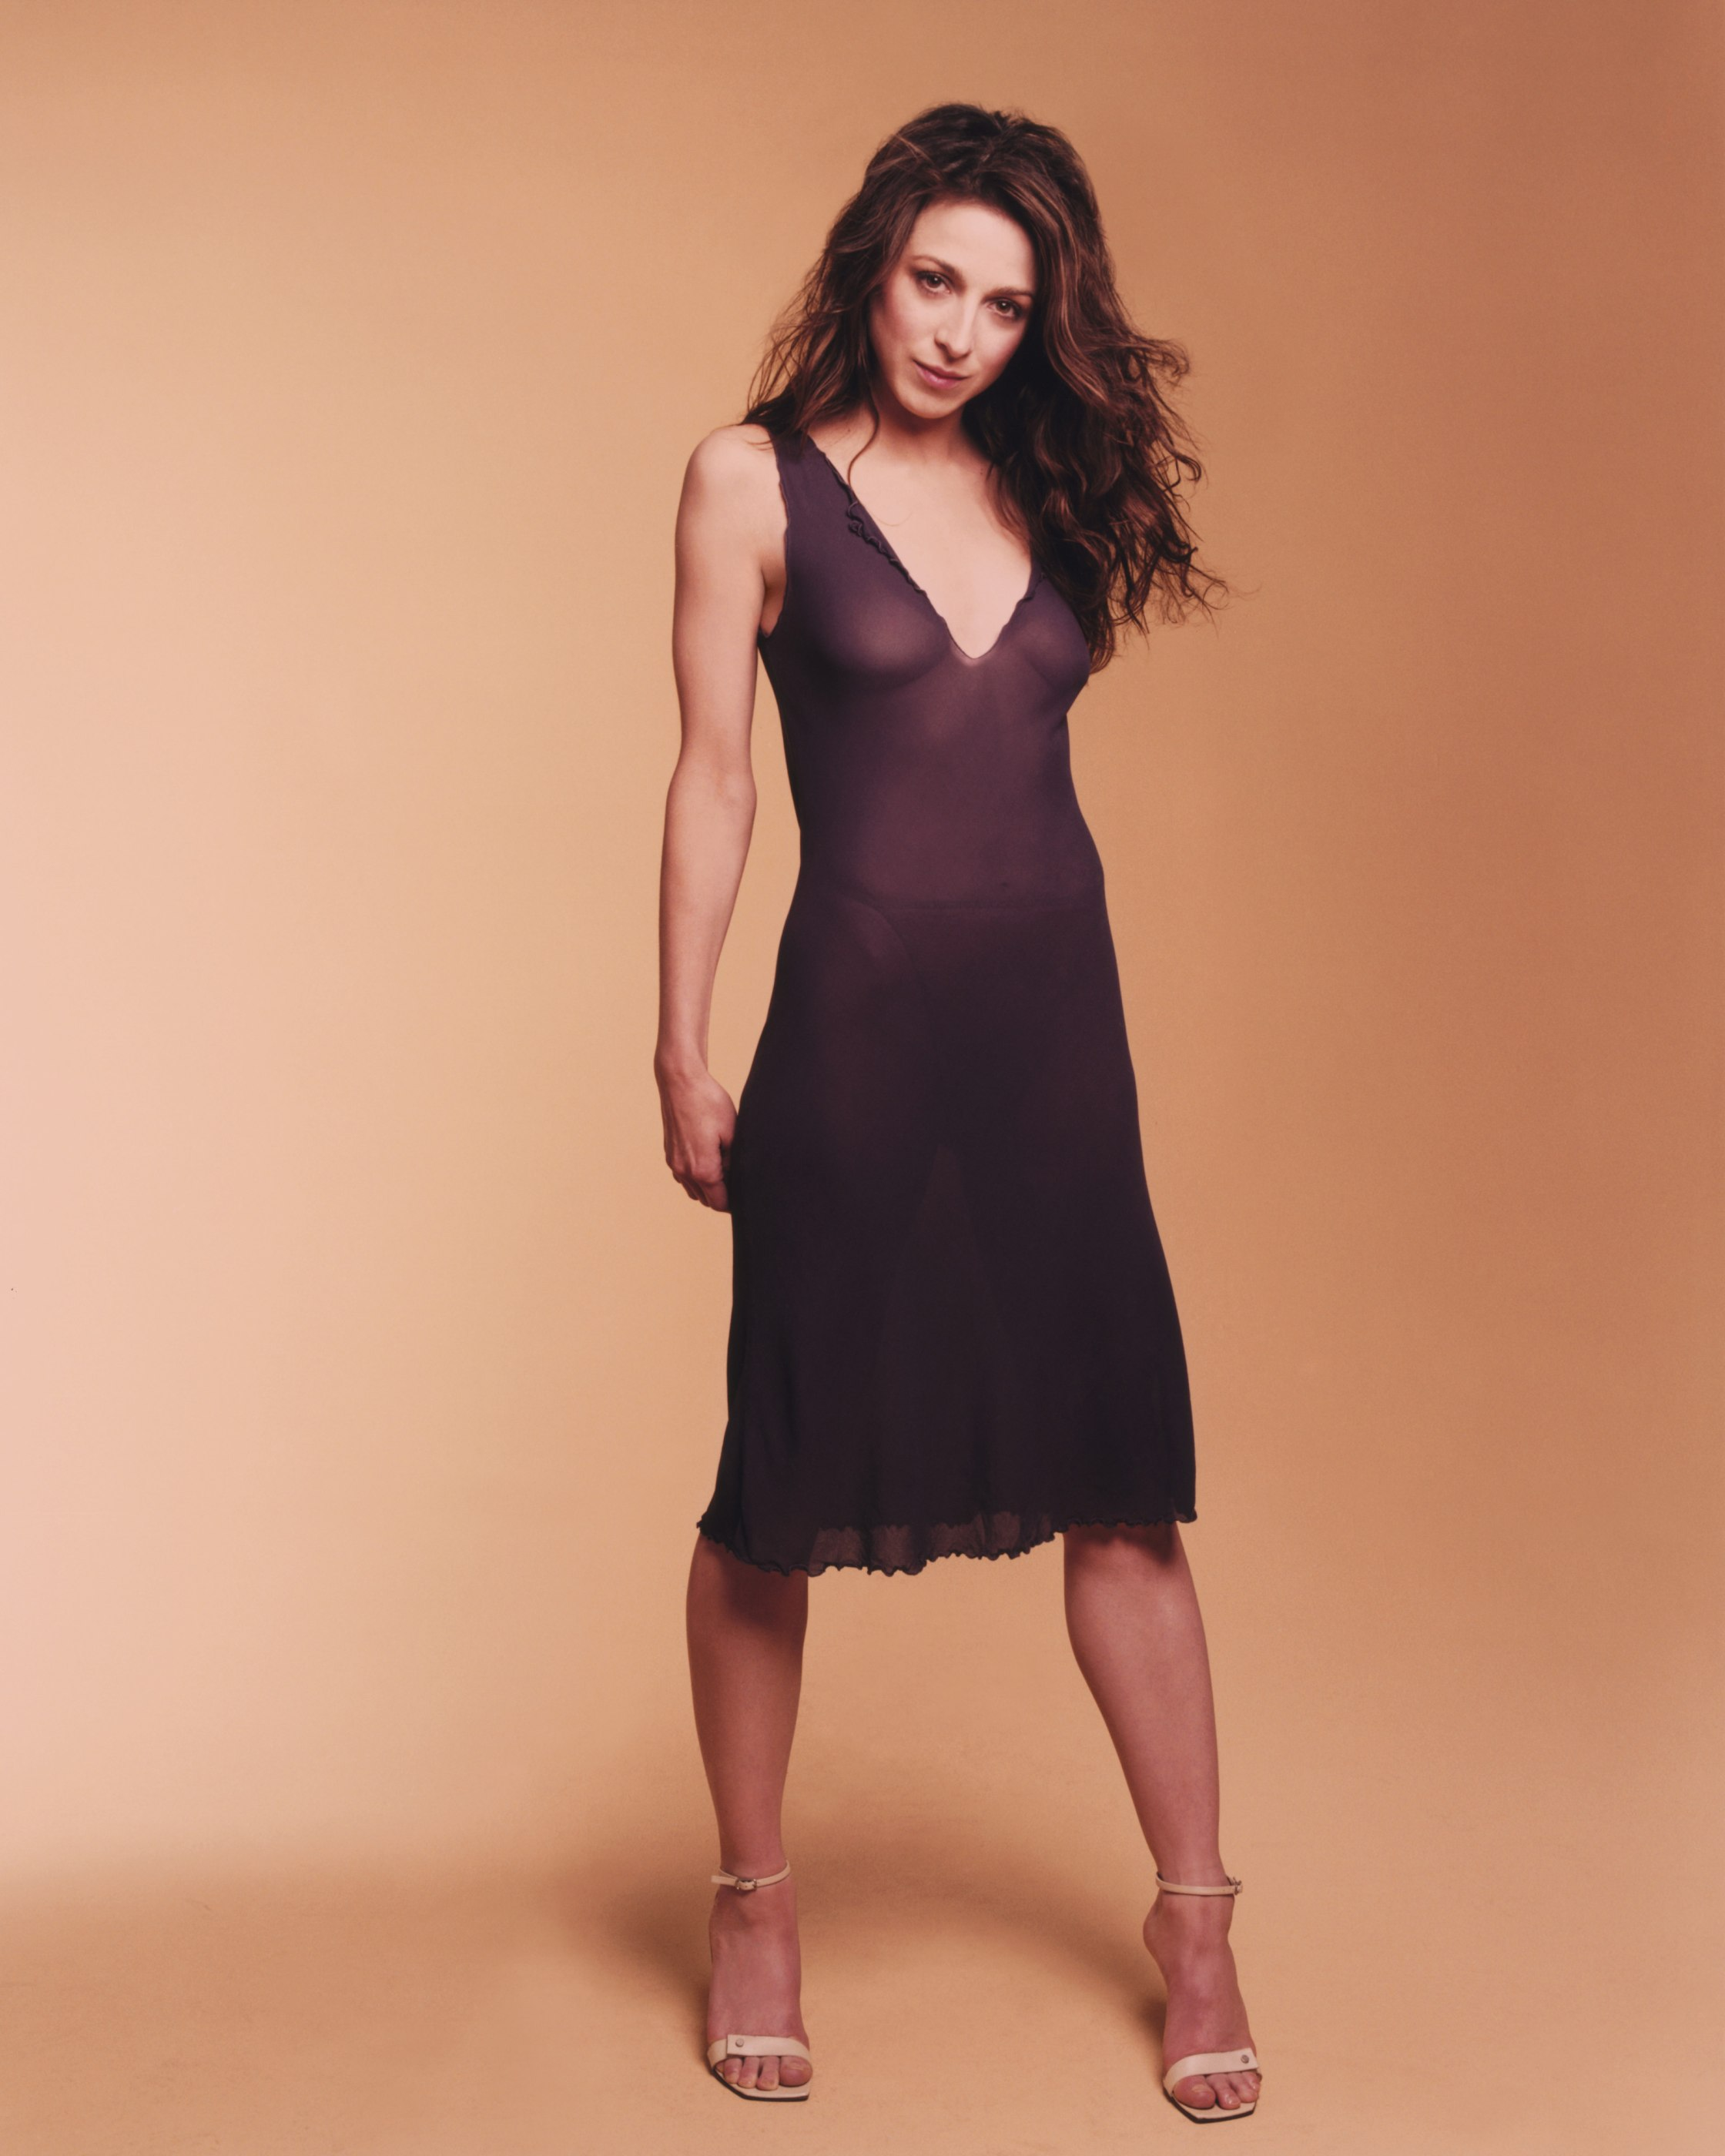 Nude marin hinkle Two and